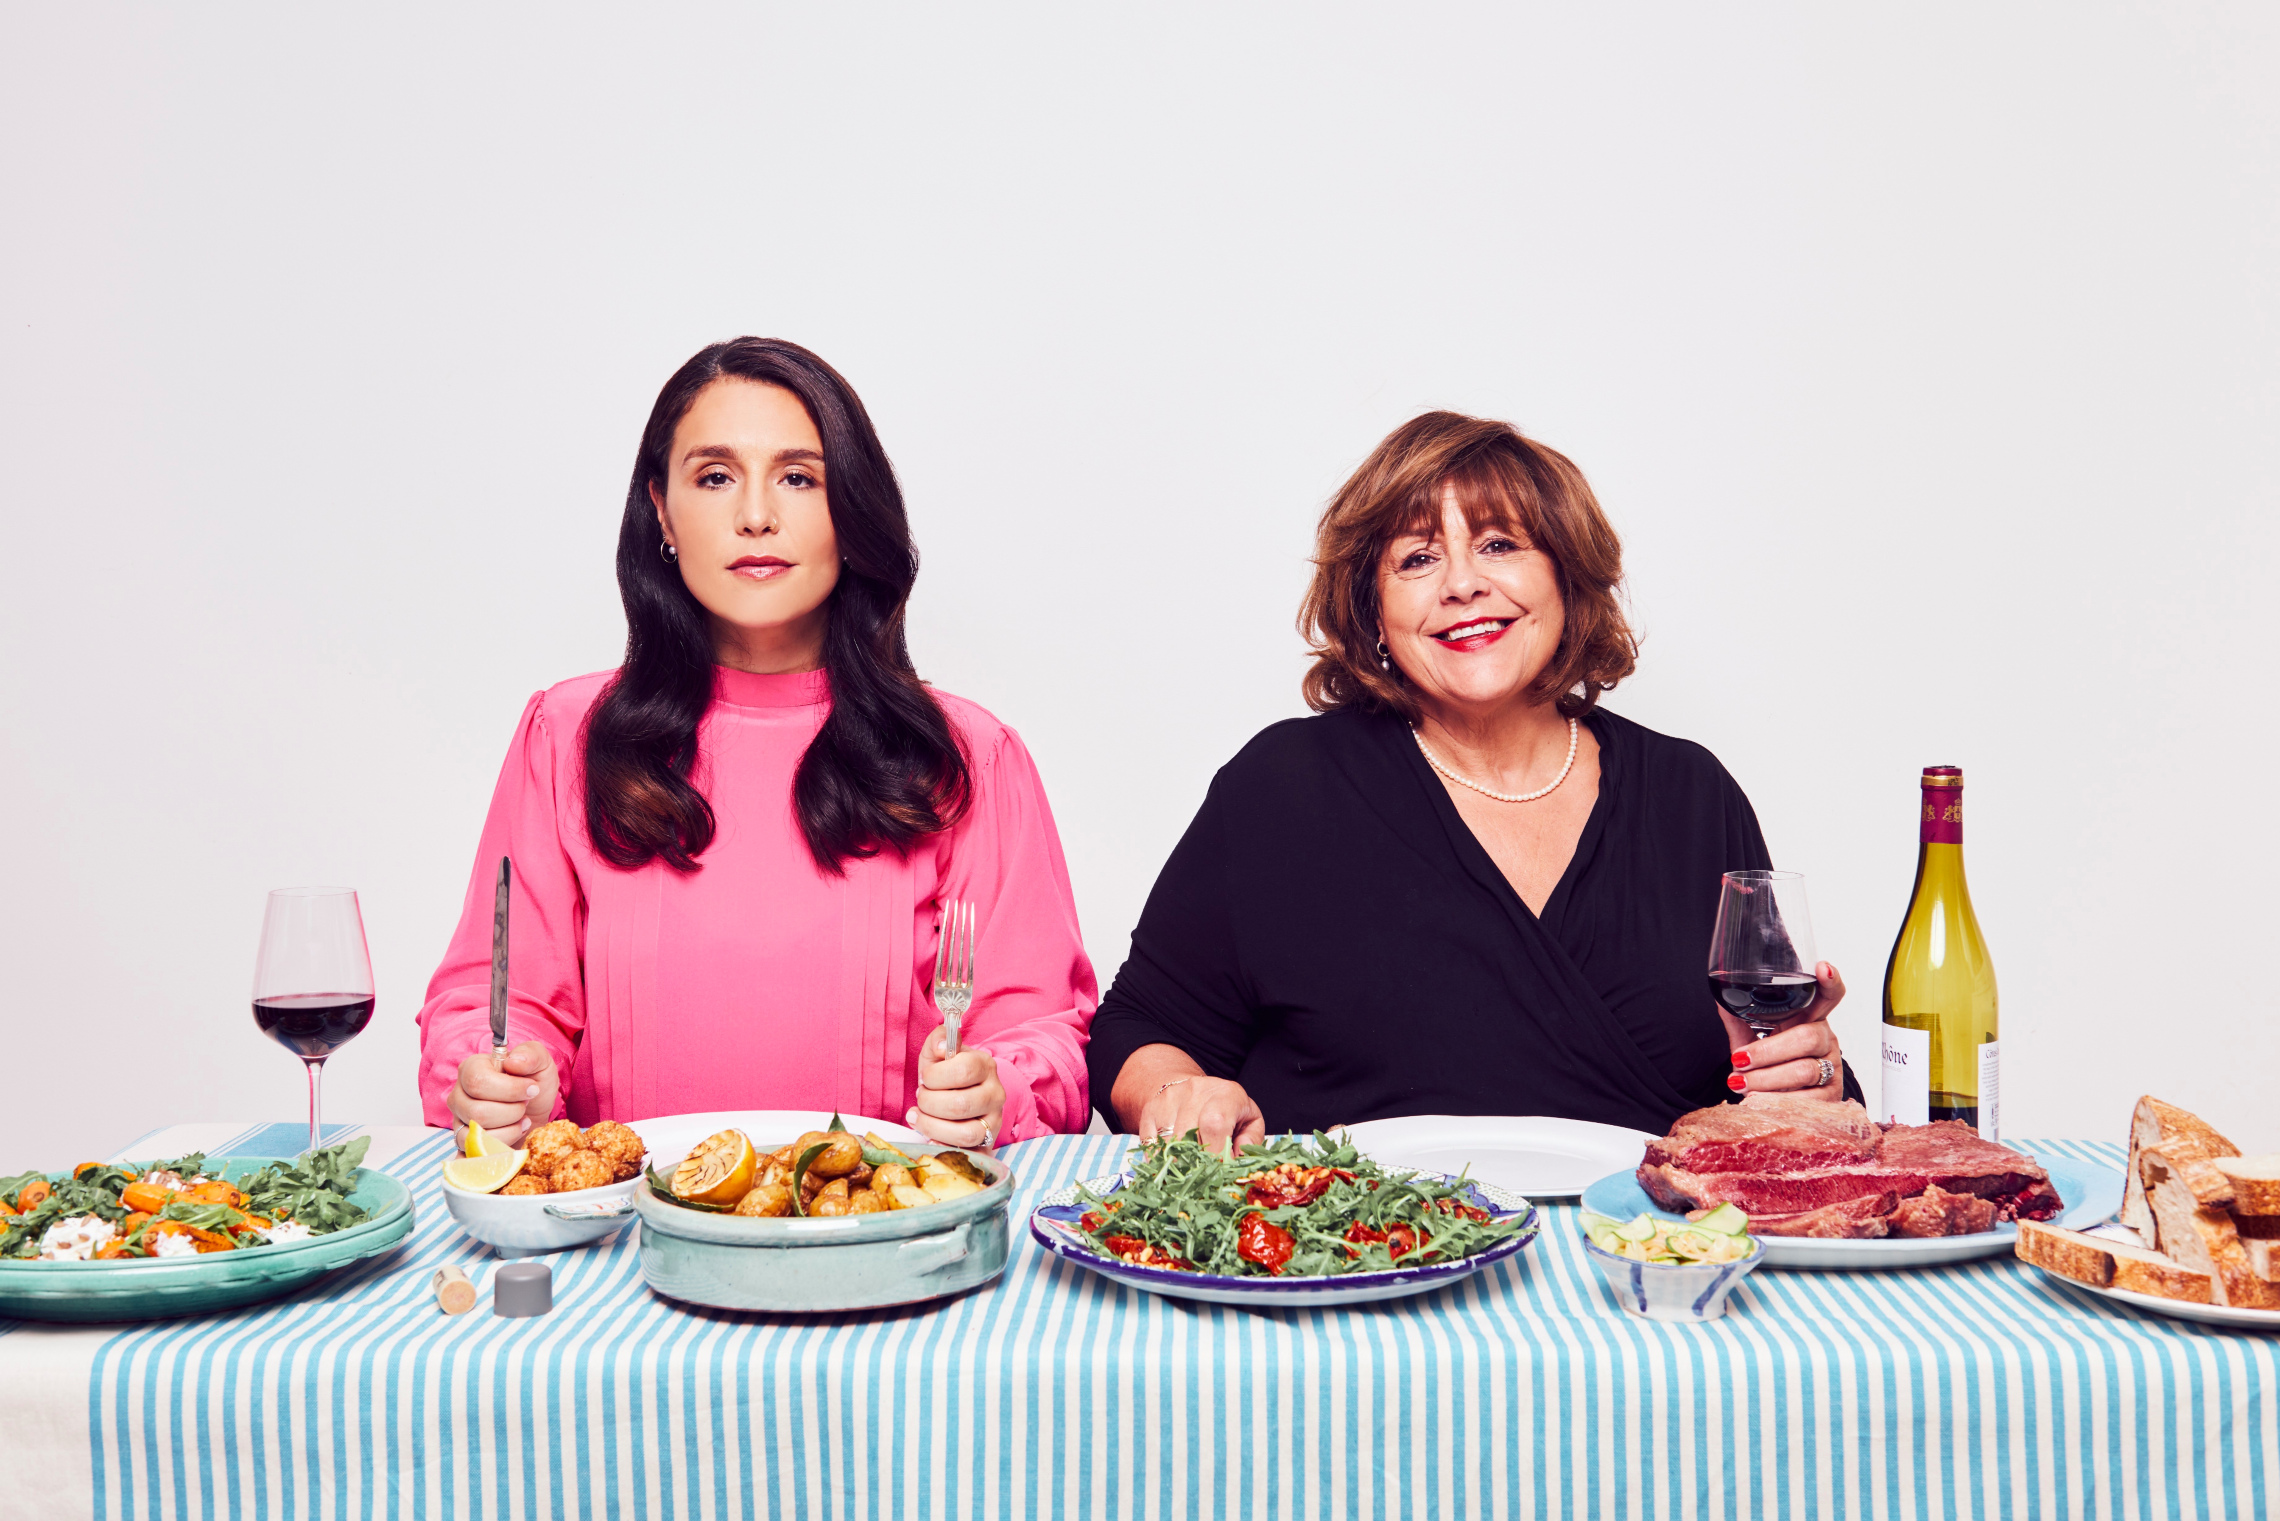 Jessie Ware and Lennie Ware sitting at a table with lots of food